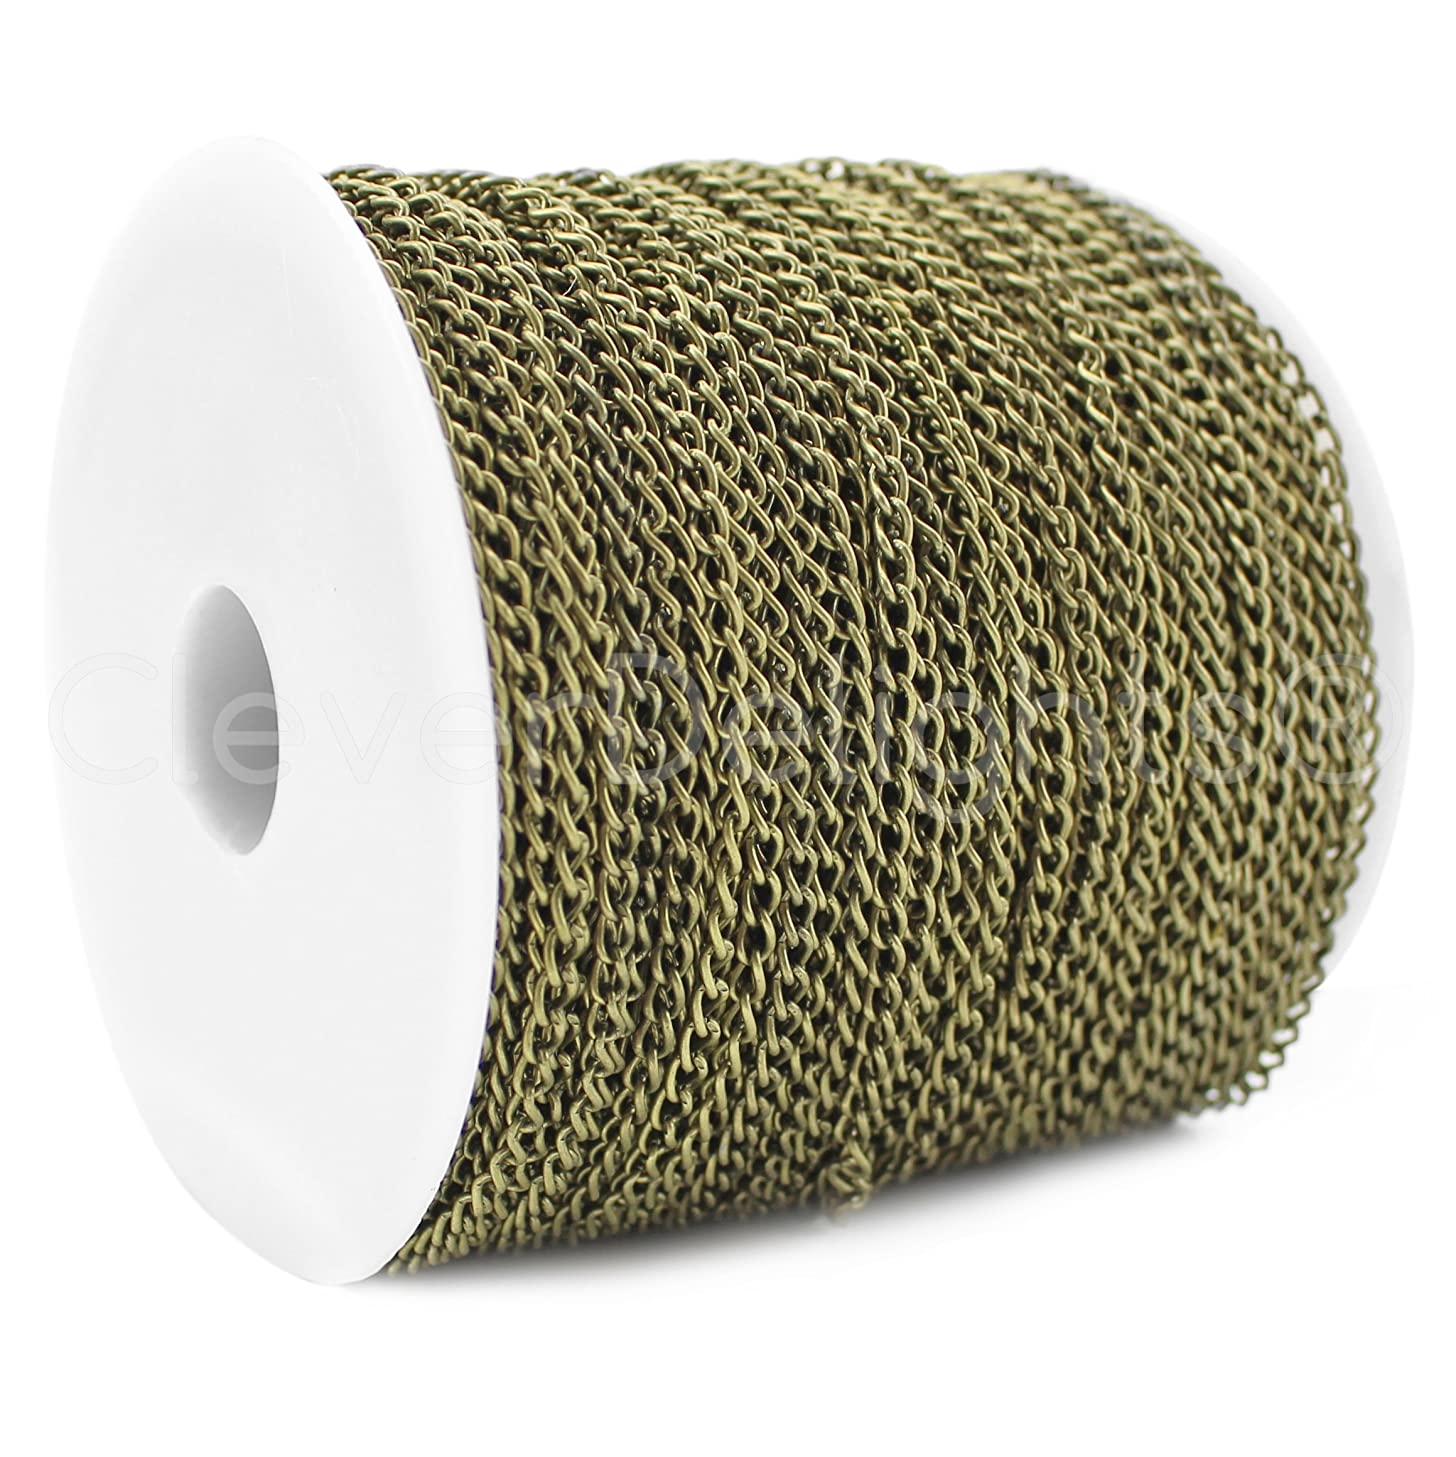 CleverDelights Curb Chain Spool - 3x5mm Link - Antique Bronze Color - 330 Feet - Bulk Jewelry Chain Roll